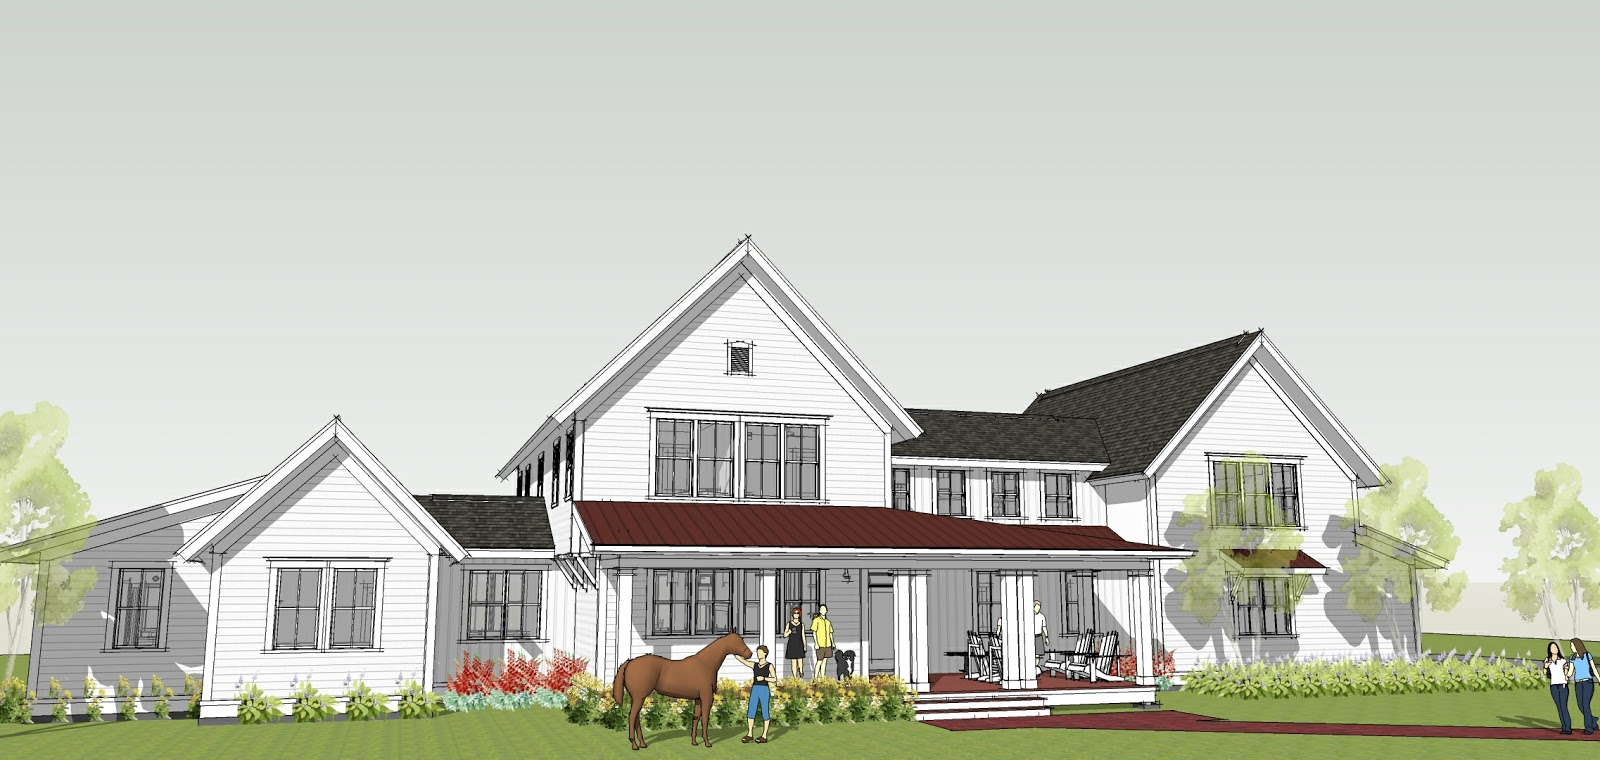 Ron brenner architects new modern farmhouse design completed for House plans farmhouse modern